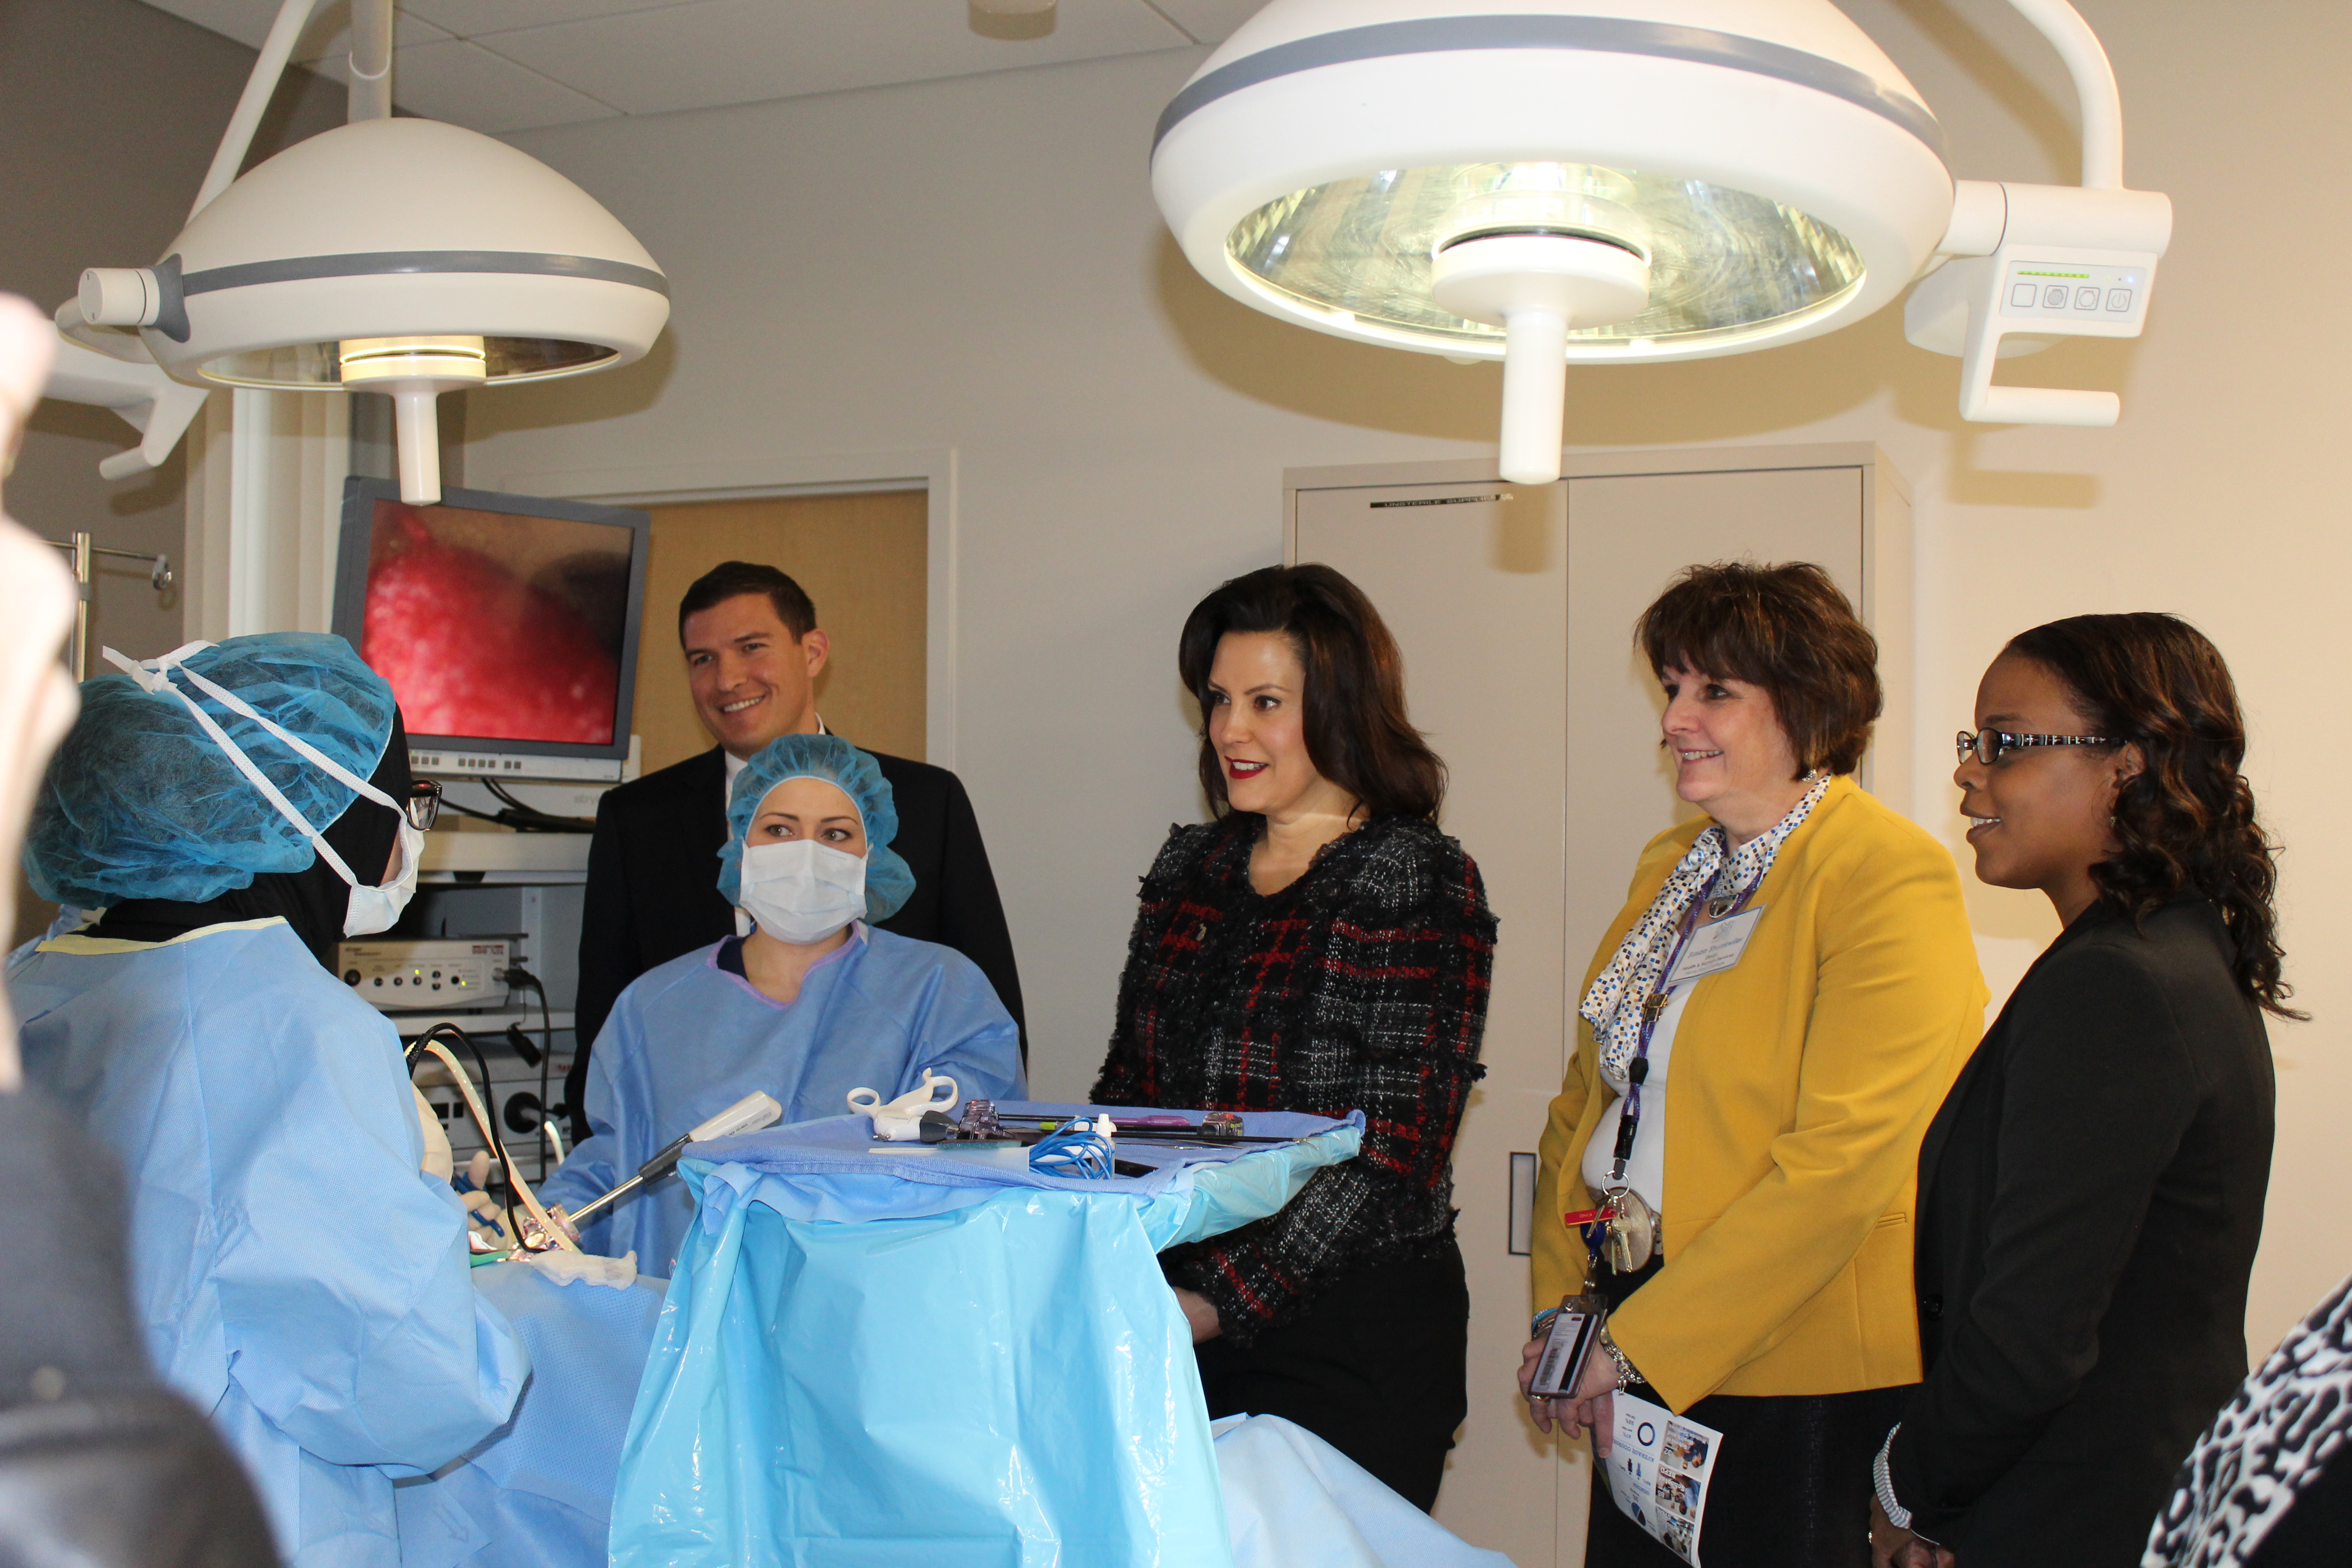 Henry Ford College President Russell Kavalhuna with Gov. Whitmer (middle), Susan Shunkwiler, Dean of the School of Health and Human Services and two students demonstrating a lab in the Surgical Technology program. Photo by Fatima Nkata